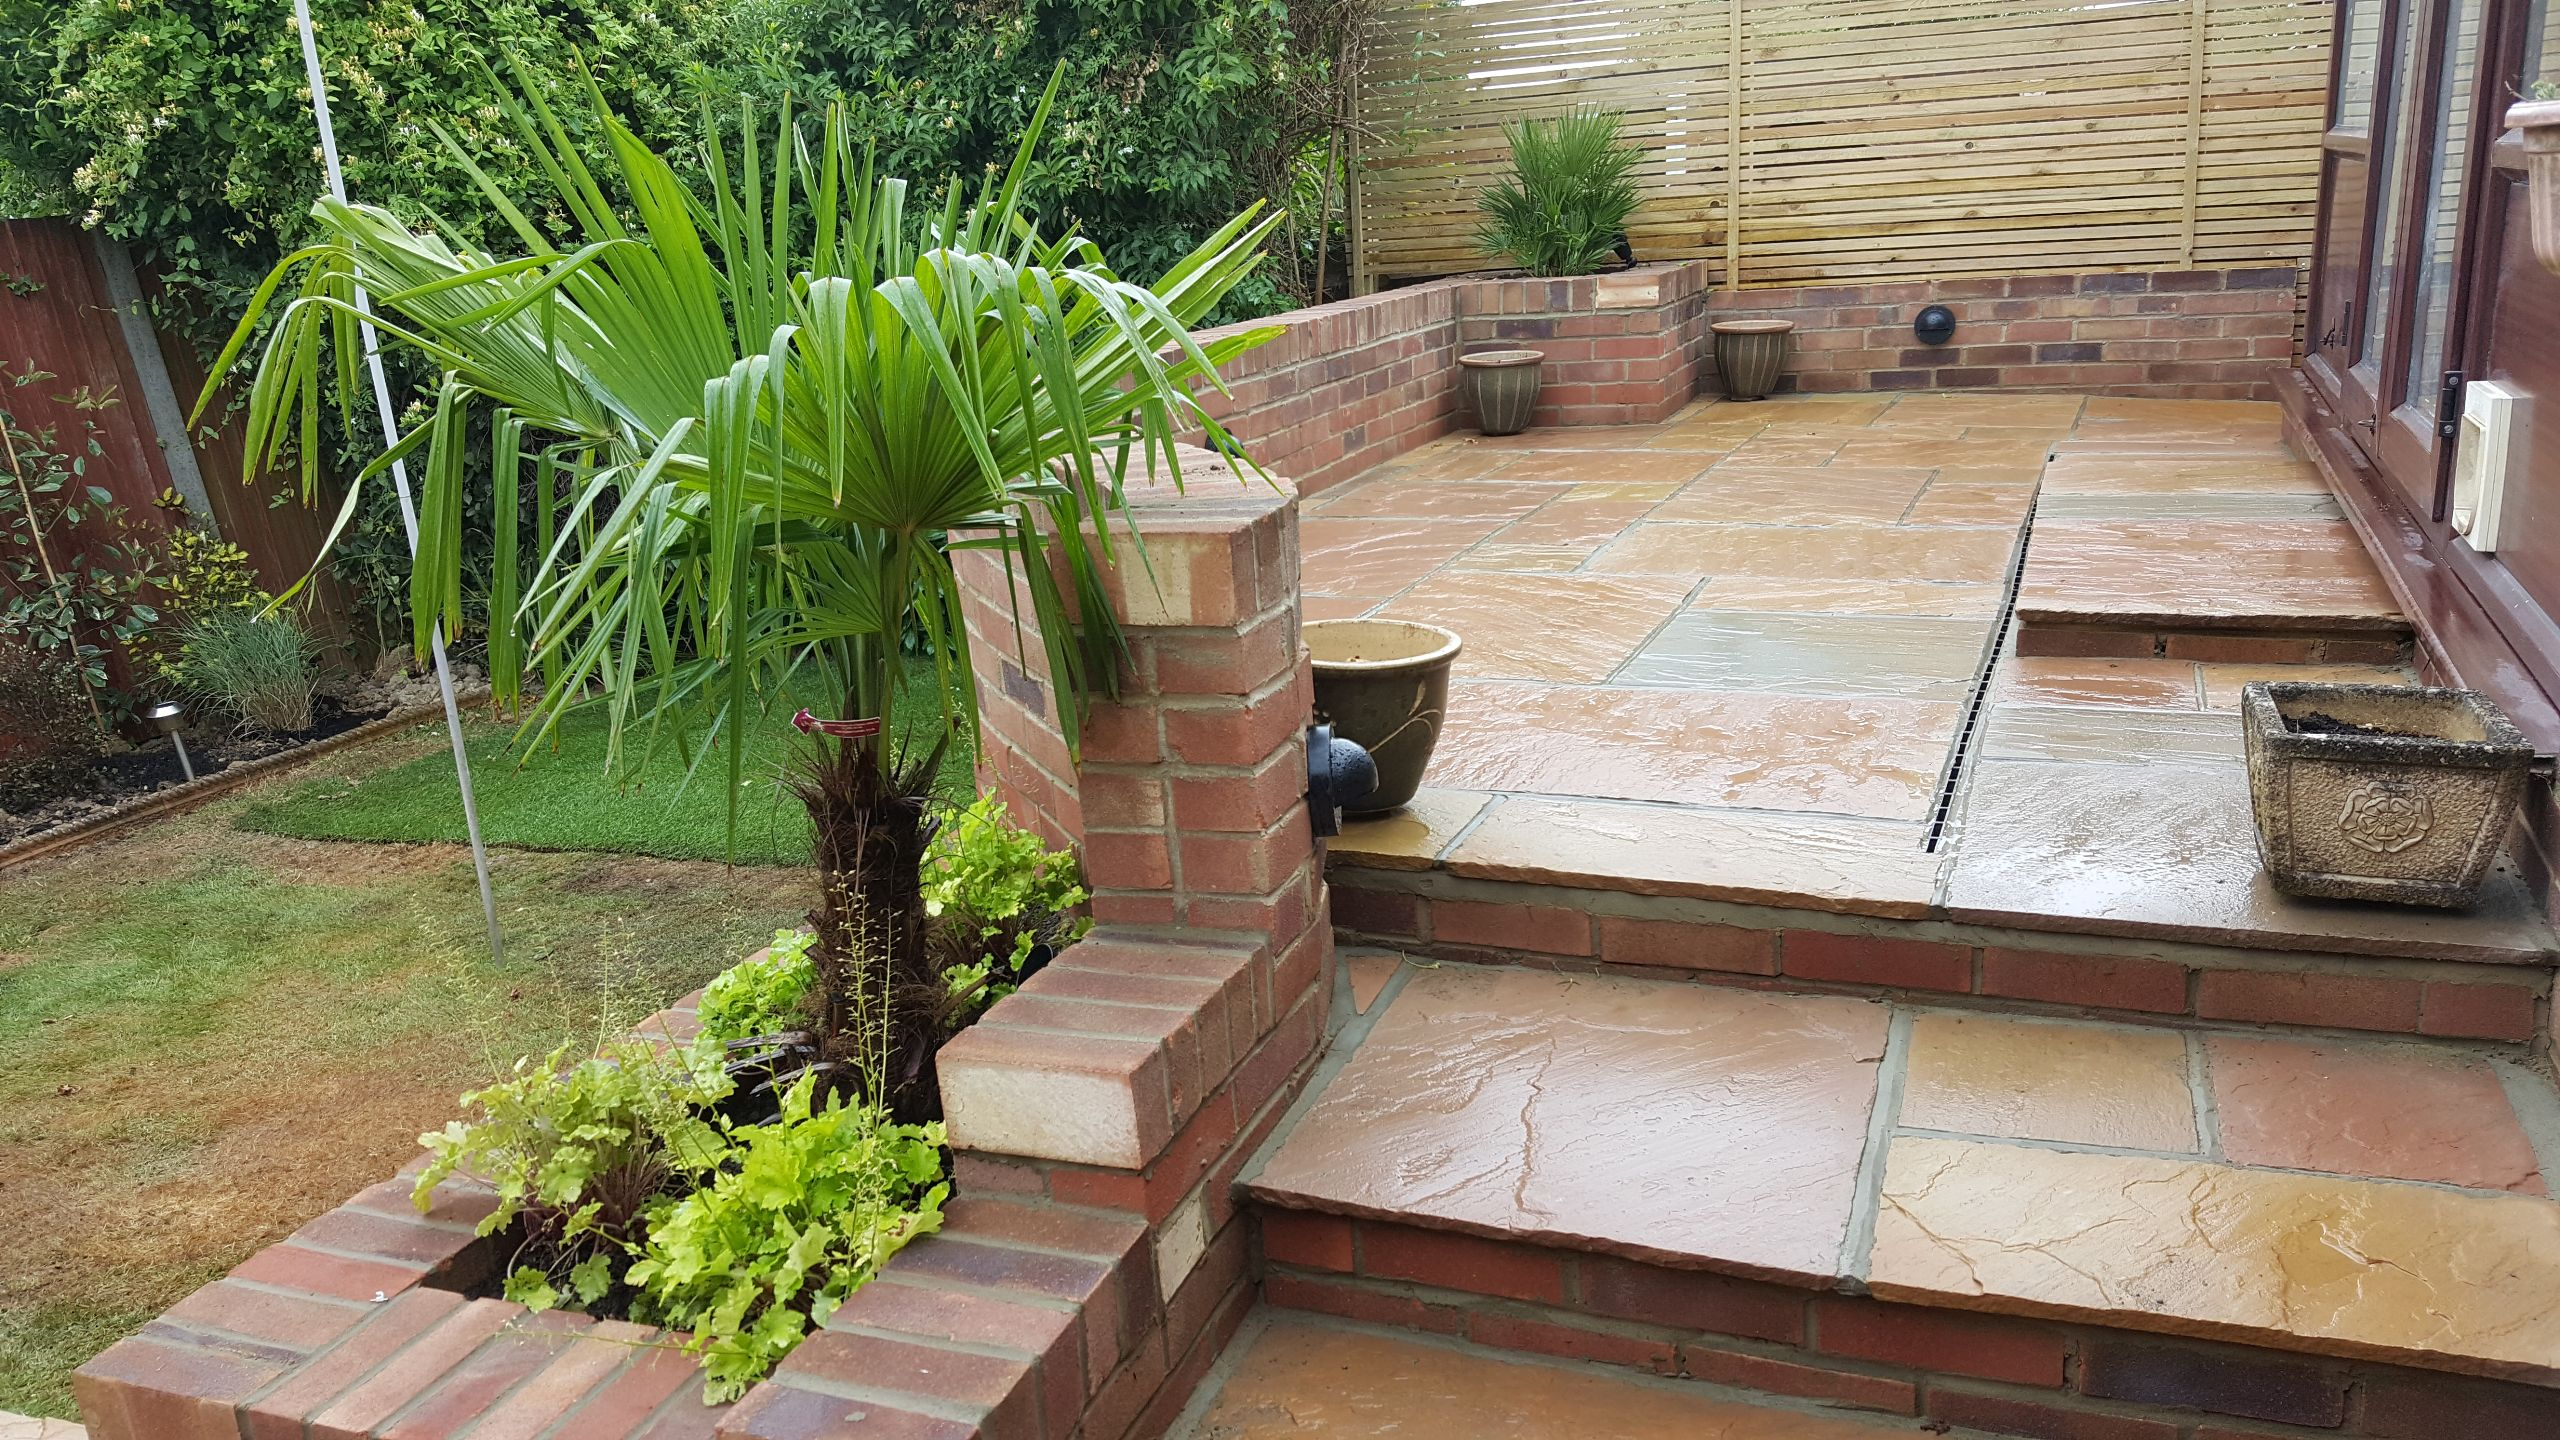 Raided Patio with steps, Garden design